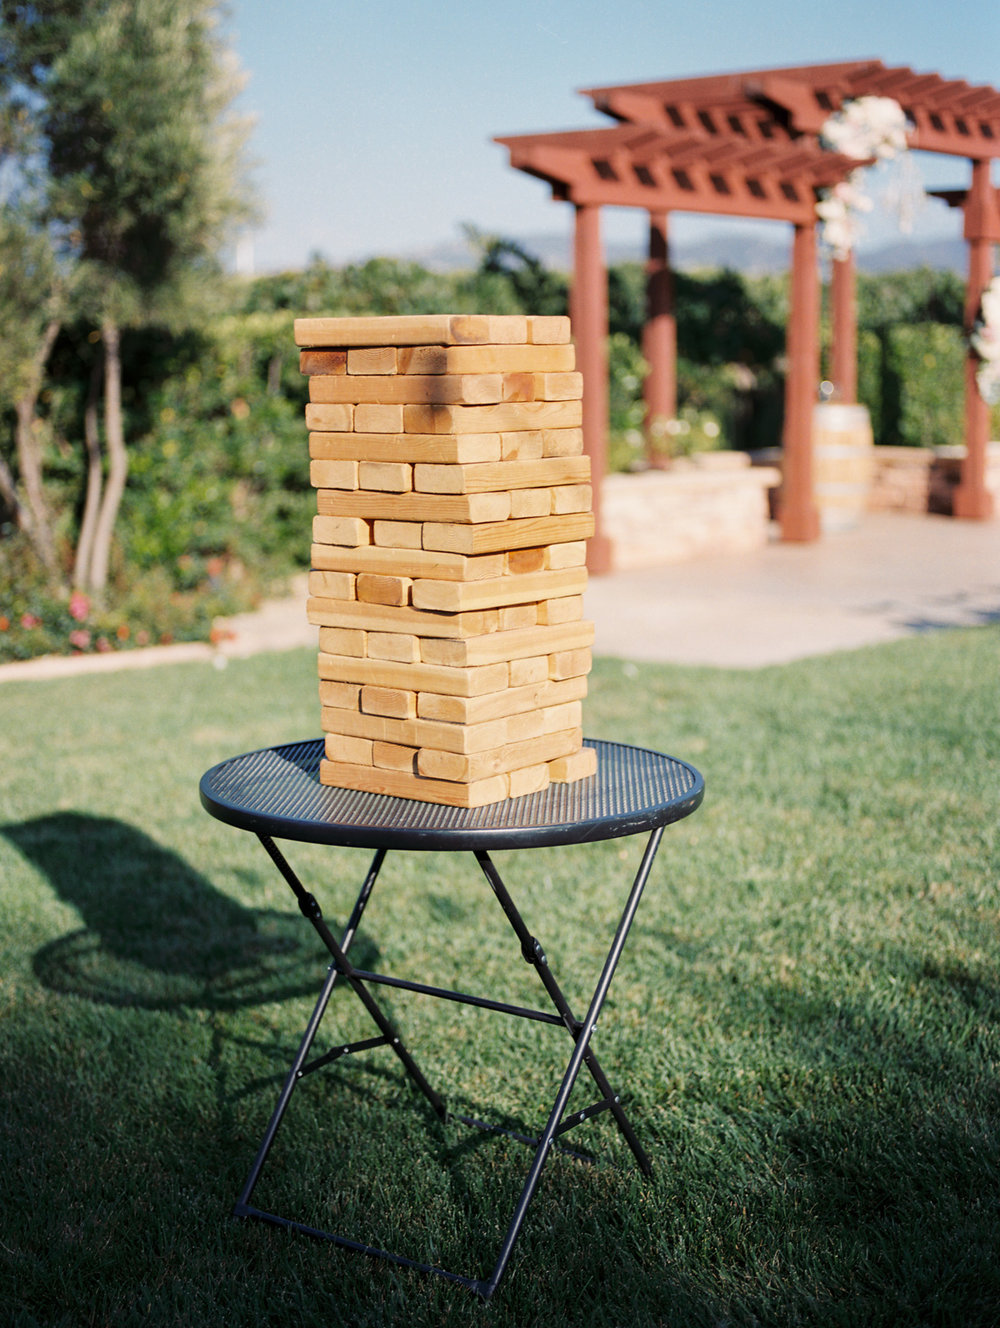 Lawn games during cocktail hour | Harrison & Jocelyne's gorgeous Temecula wedding day at Wiens Family Cellars captured by Temecula wedding photographers Betsy & John